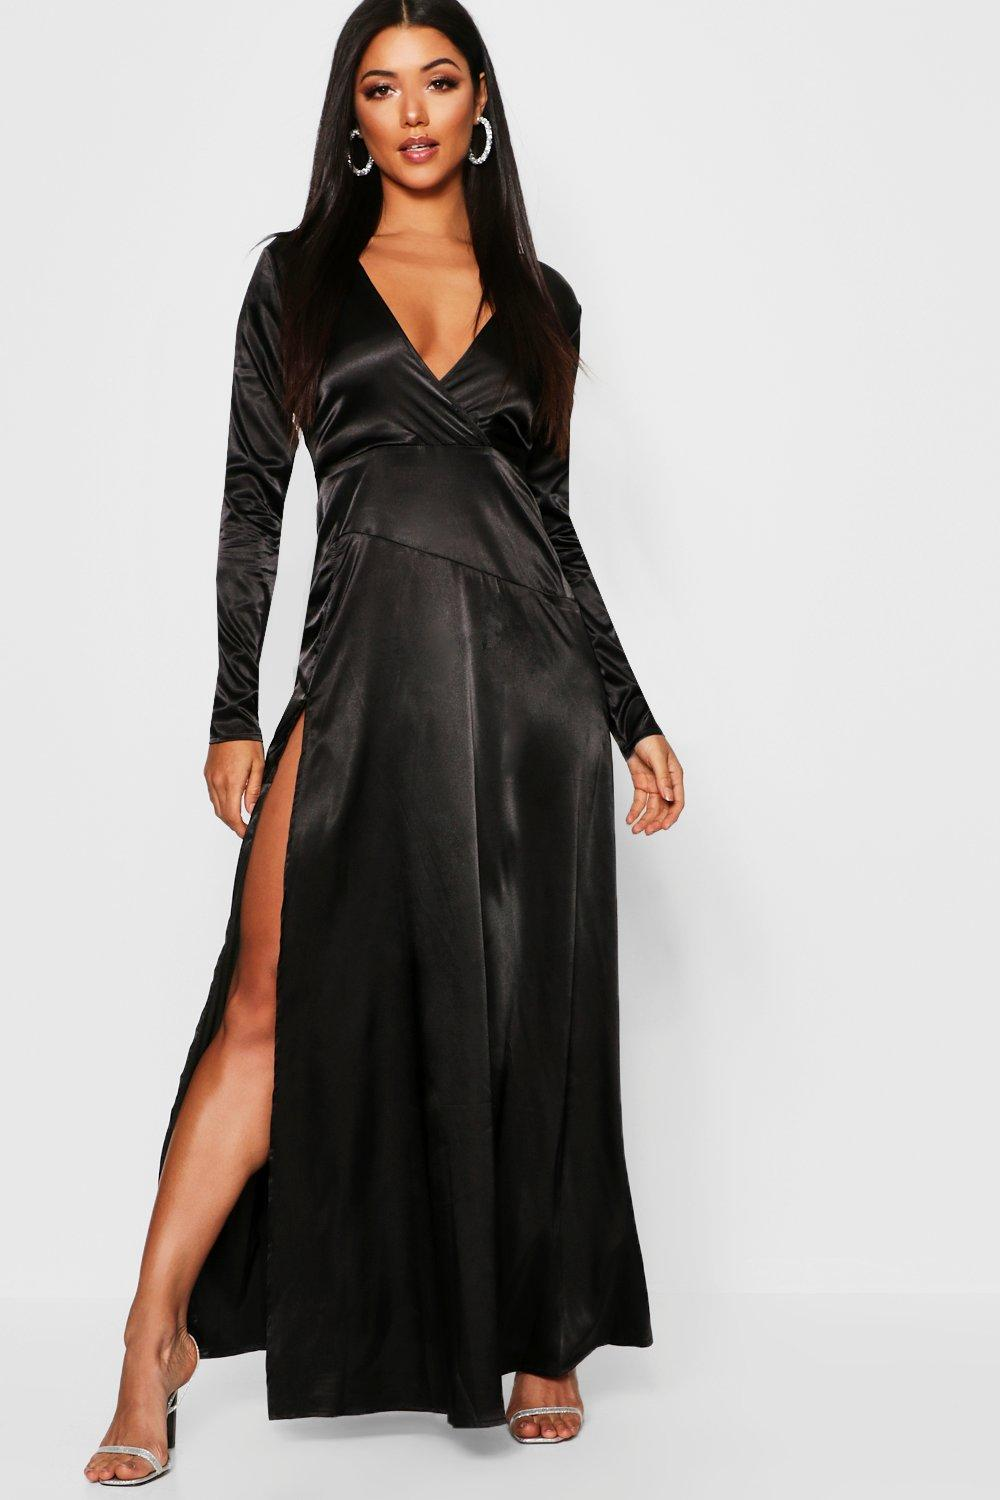 4f85571302ca5 Womens Black Satin Wrap Detail Long Sleeve Maxi Dress. Hover to zoom